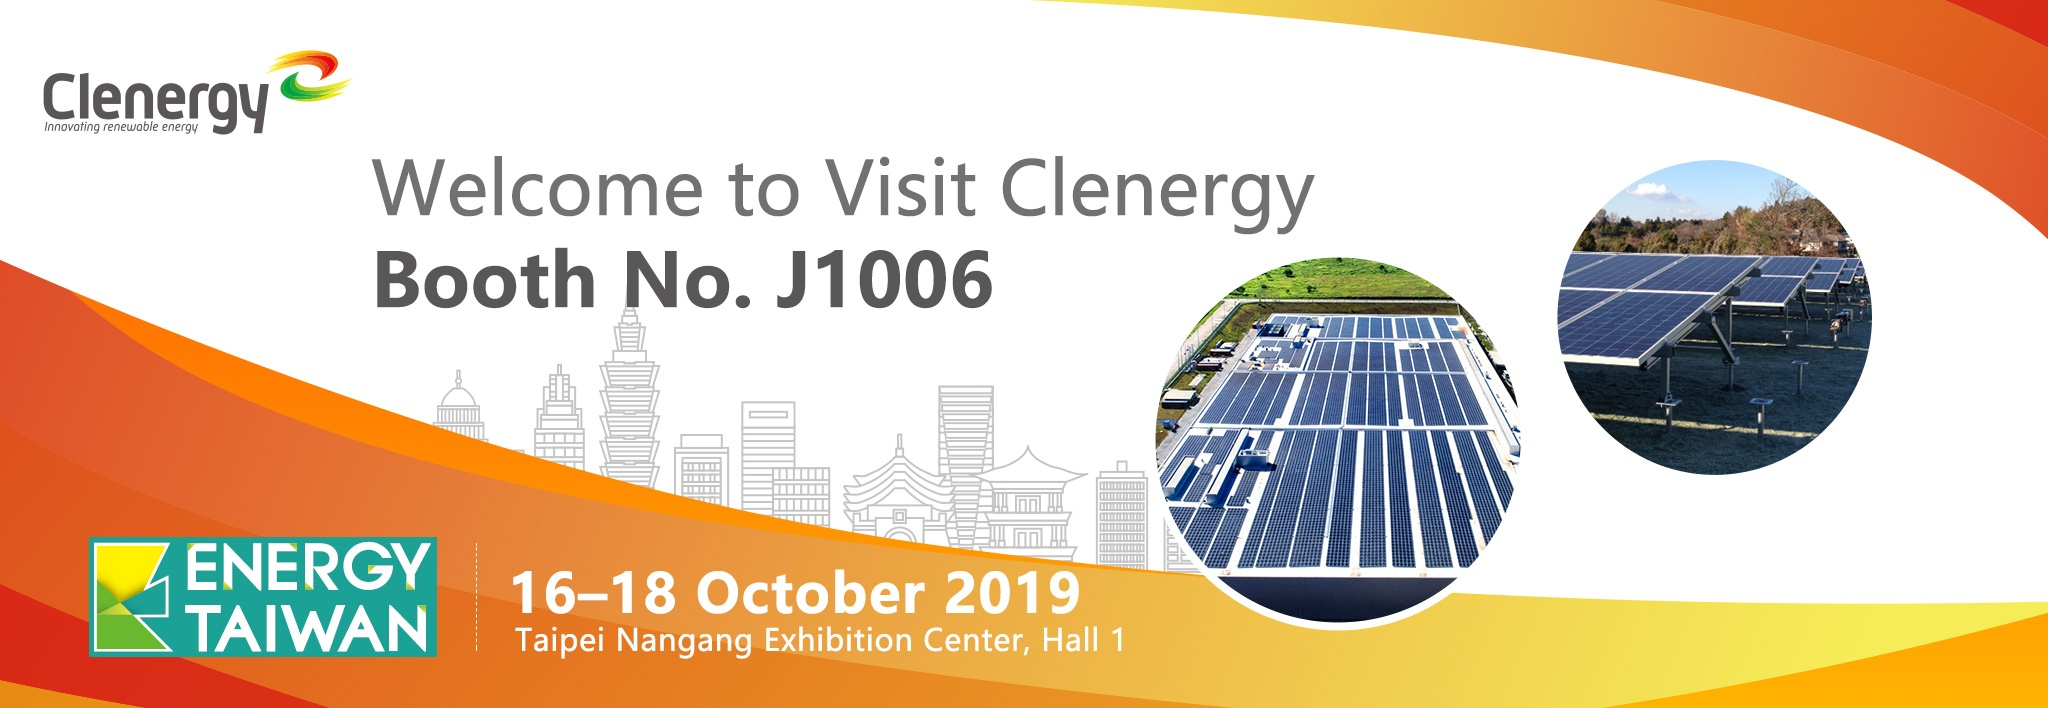 Clenergy at 2019 Energy Taiwan Invitation Letter